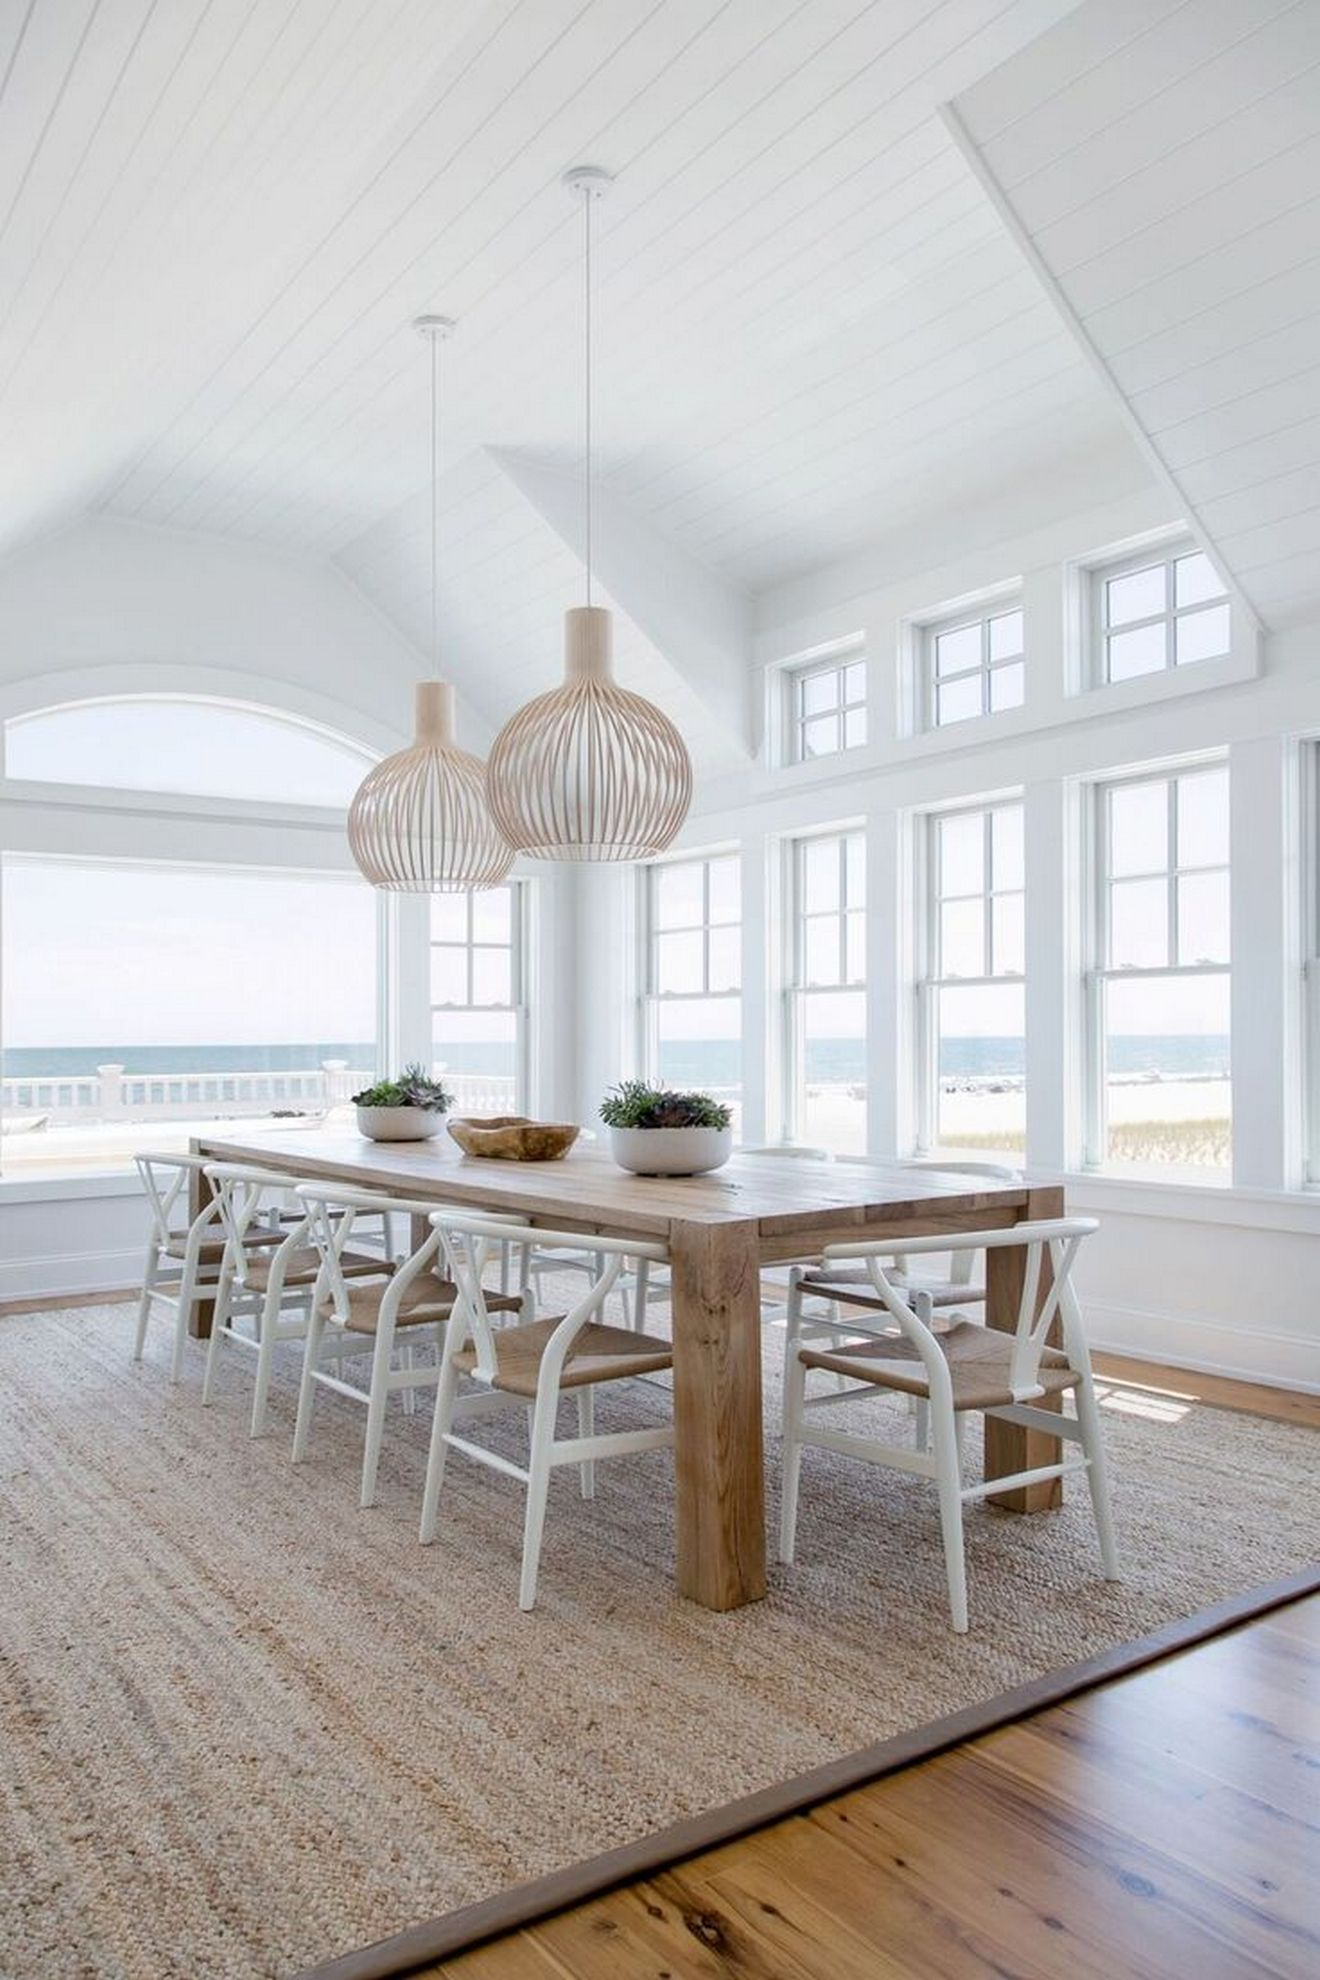 ✔28 Formidable And Artistic Dining Table Design